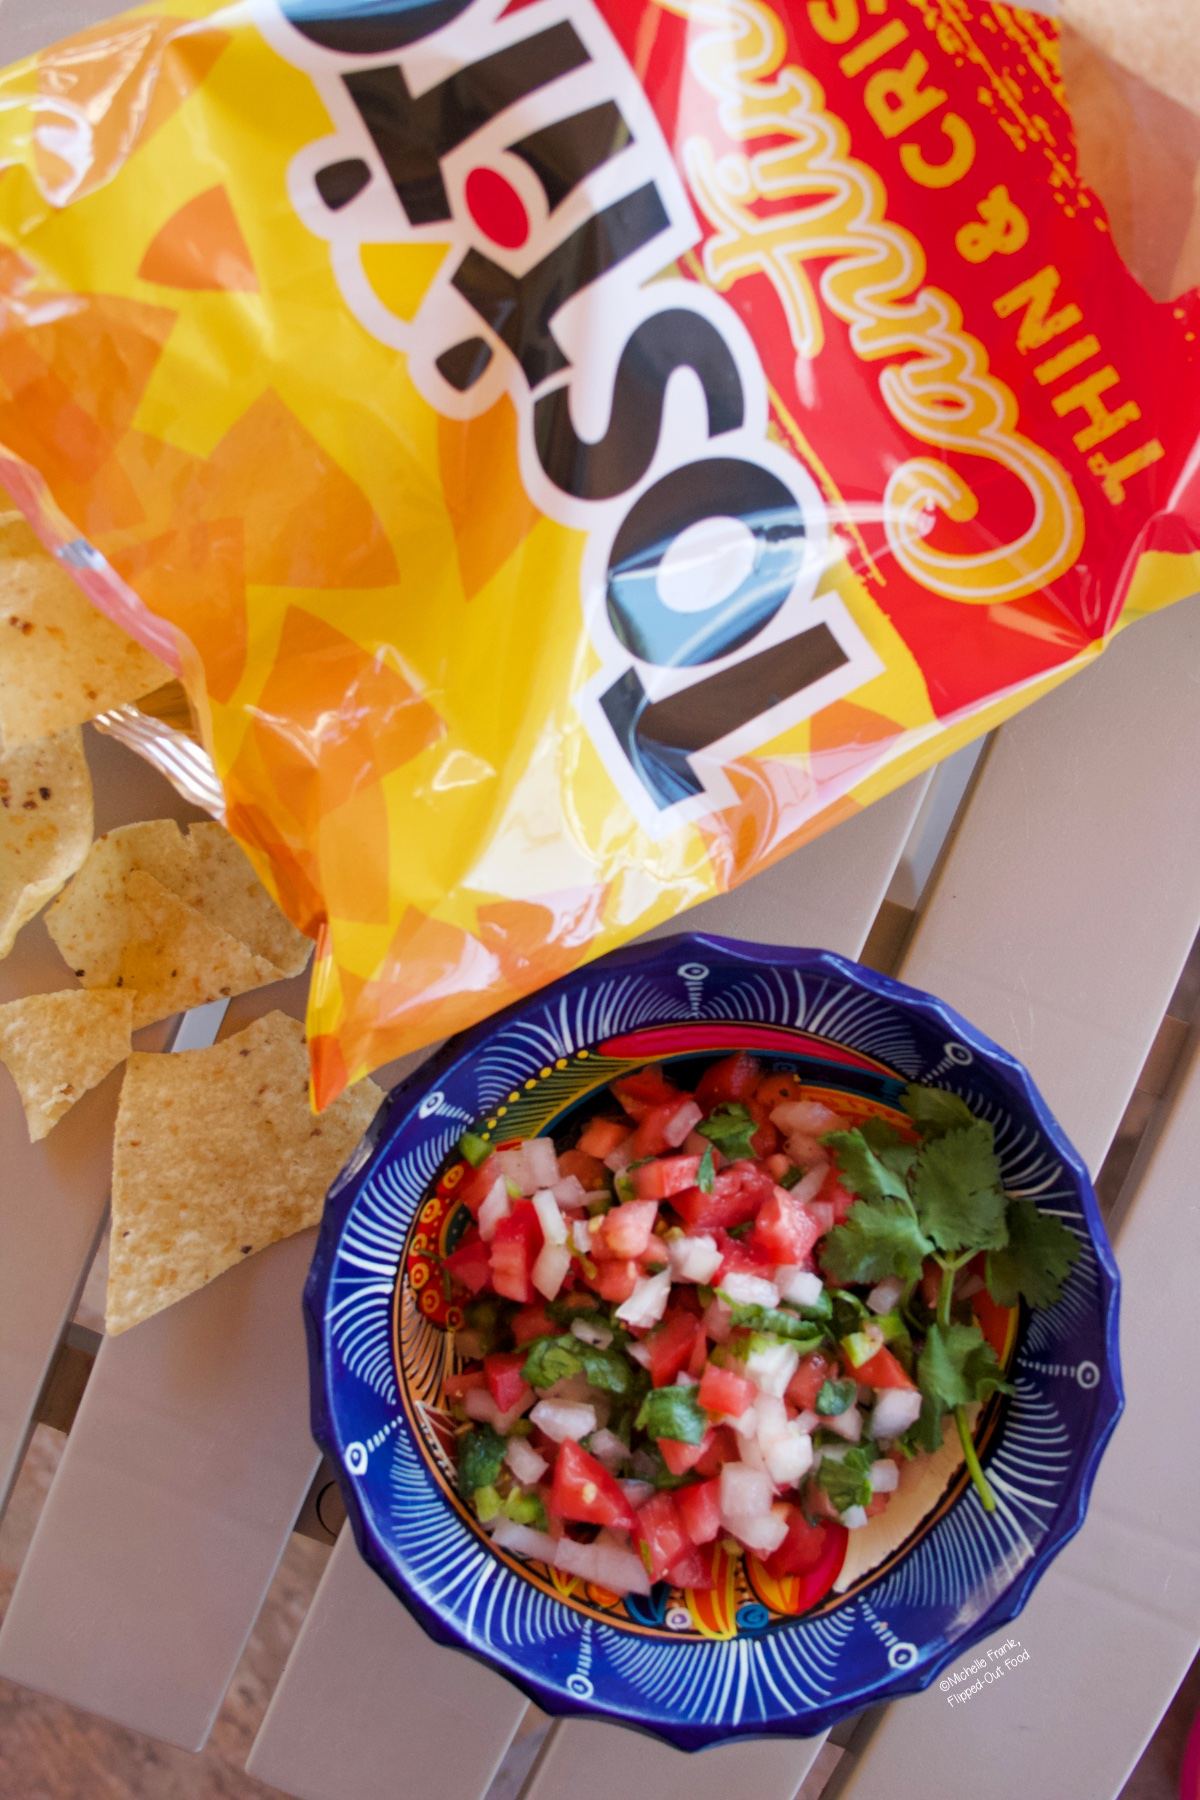 Pico de gallo in a decorative blue bowl sitting atop a patio table. The bowl sits next to a bag of tortilla chips.